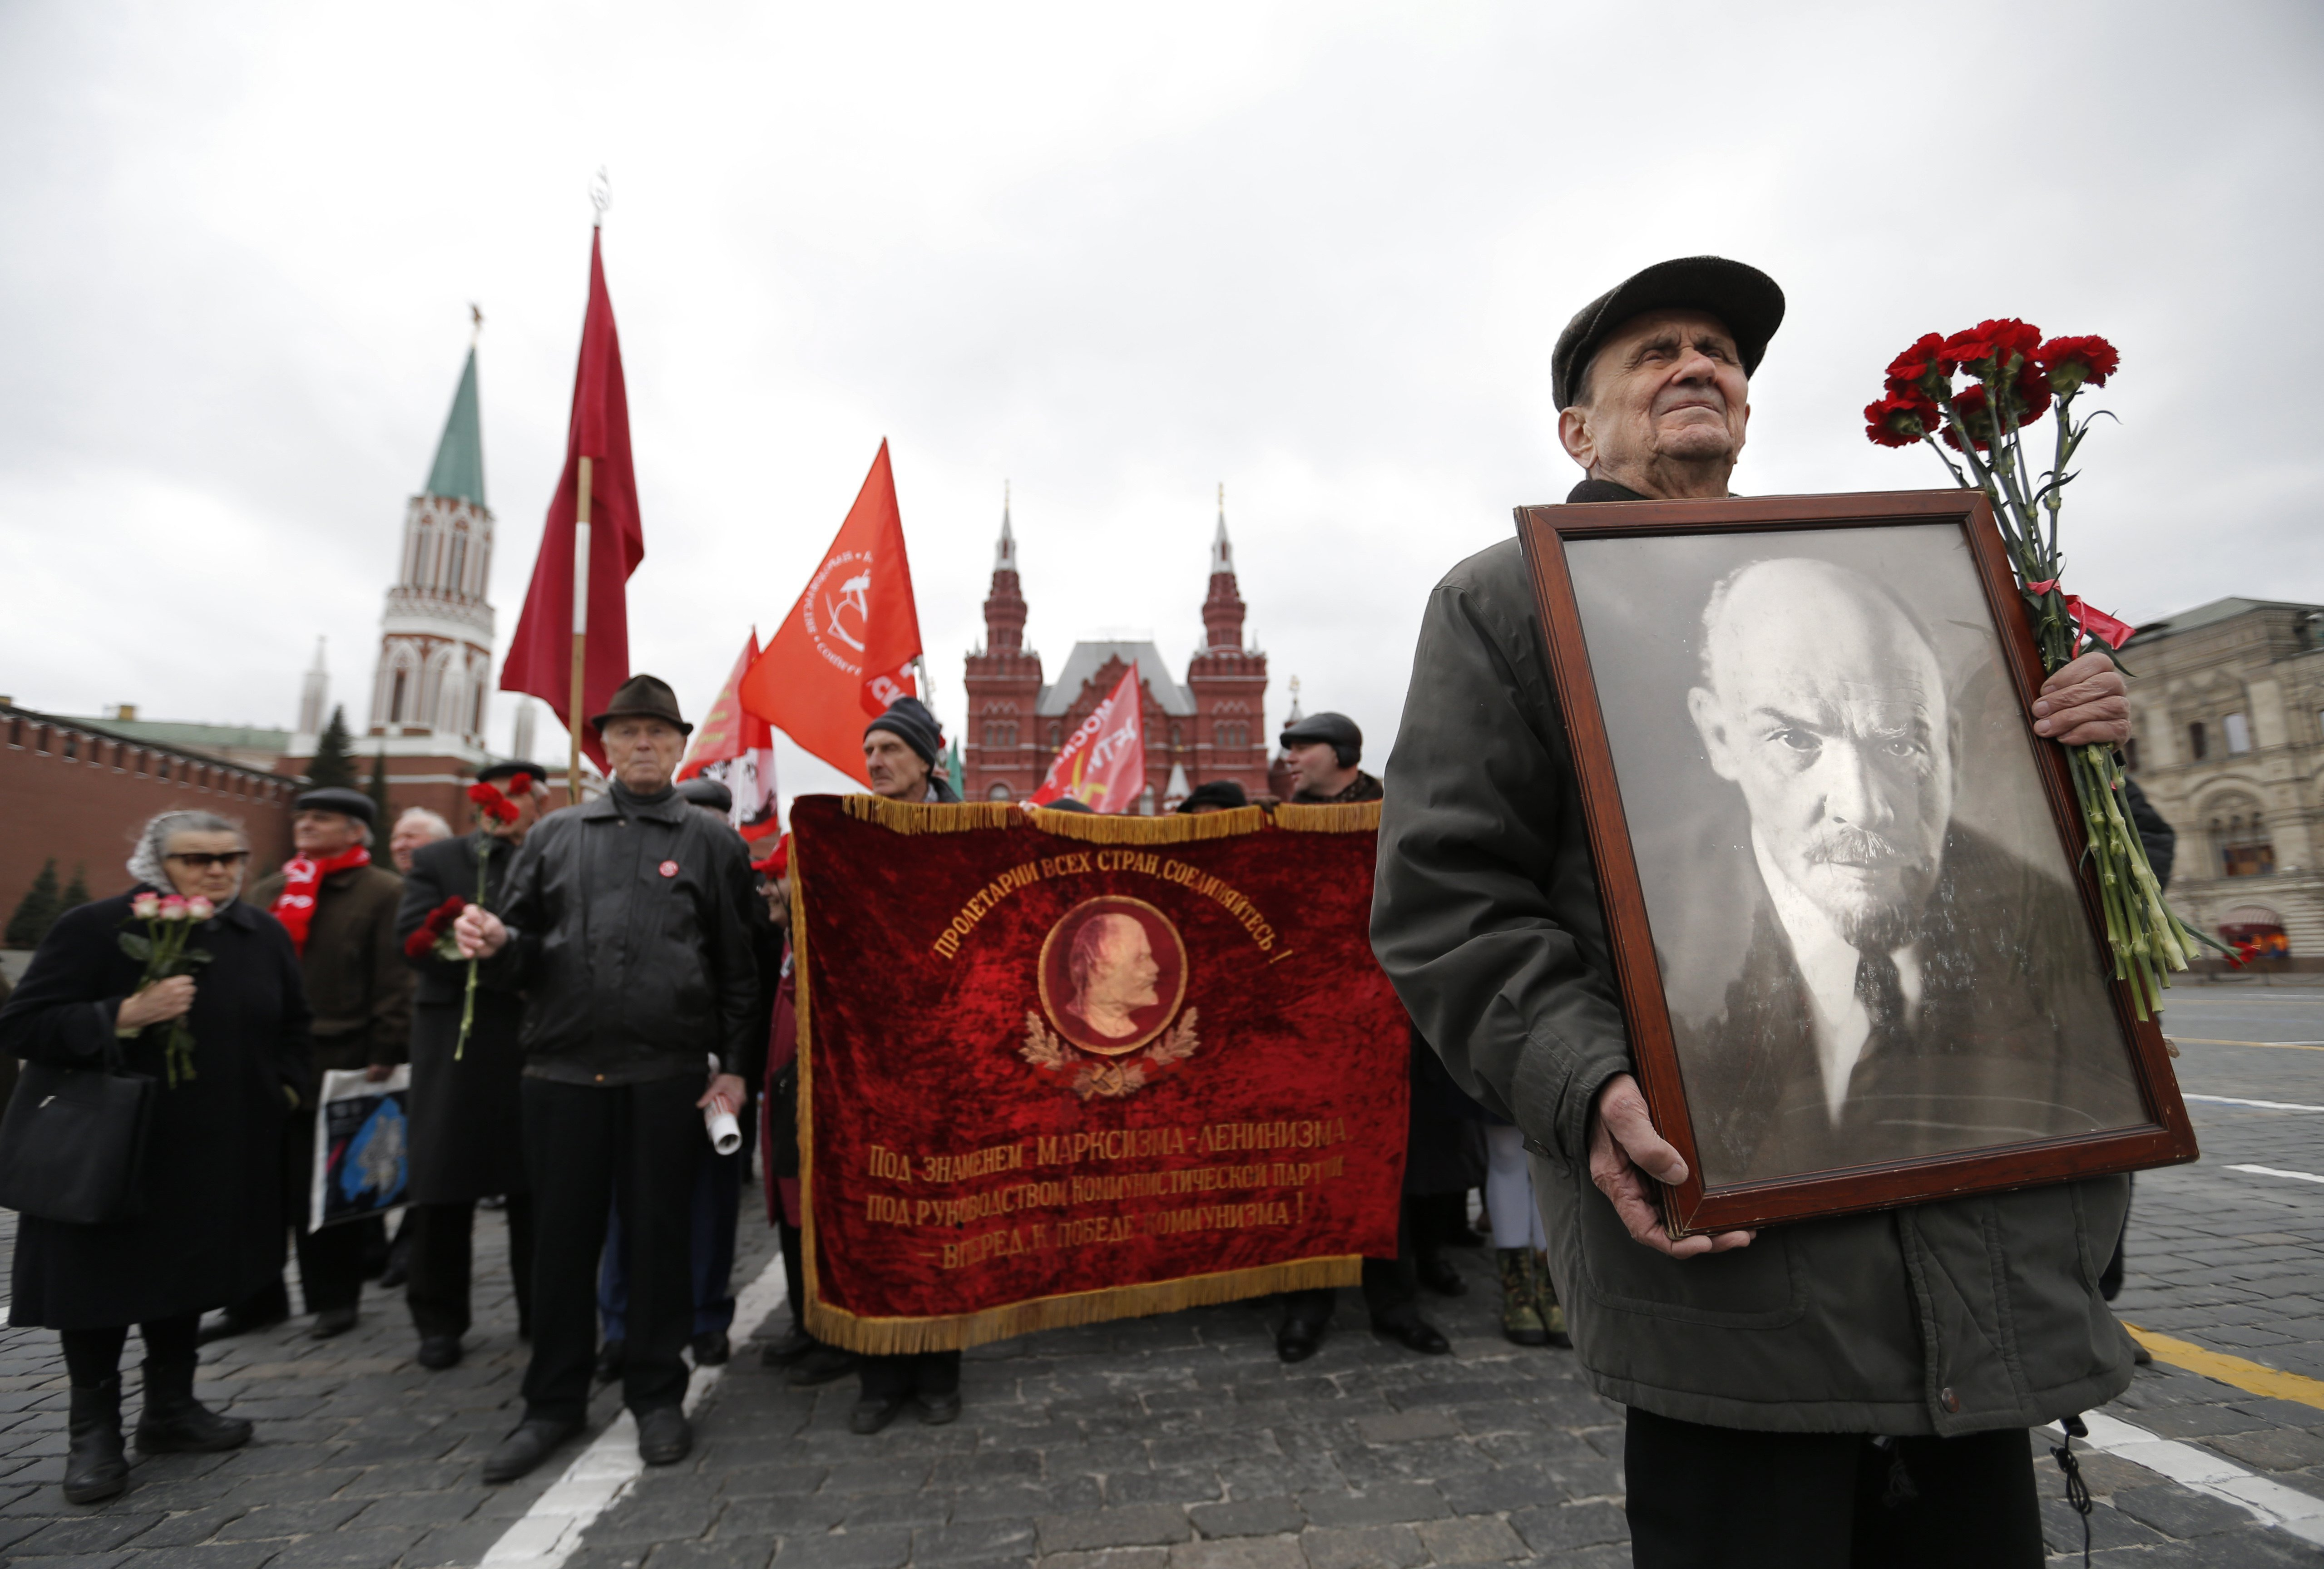 SHP08. Moscow (Russian Federation), 22/04/2017.- Members of Russian Communist party hold flags and Lenin's portrait as they stand in line to visit Lenin's mausoleum on the Red square in Moscow, as they celebrate the 147st anniversary of his birthday, Moscow, Russia, 22 April 2017. Vladimir Lenin, a founder of the Russian Communist party and father of the communist revolution in Russia is buried as a mummy on the central capital square. There have been demands to rebury Lenin next to his mother at Volkovo cemetery in St. Petersburg, according to what has been said was his will. In 2017, Russians will mark the 100th anniversary of the 'Great October Socialist Revolution', or 'Bolshevik Revolution' of 1917. (San Petersburgo, Moscú, Rusia) EFE/EPA/MAXIM SHIPENKOV